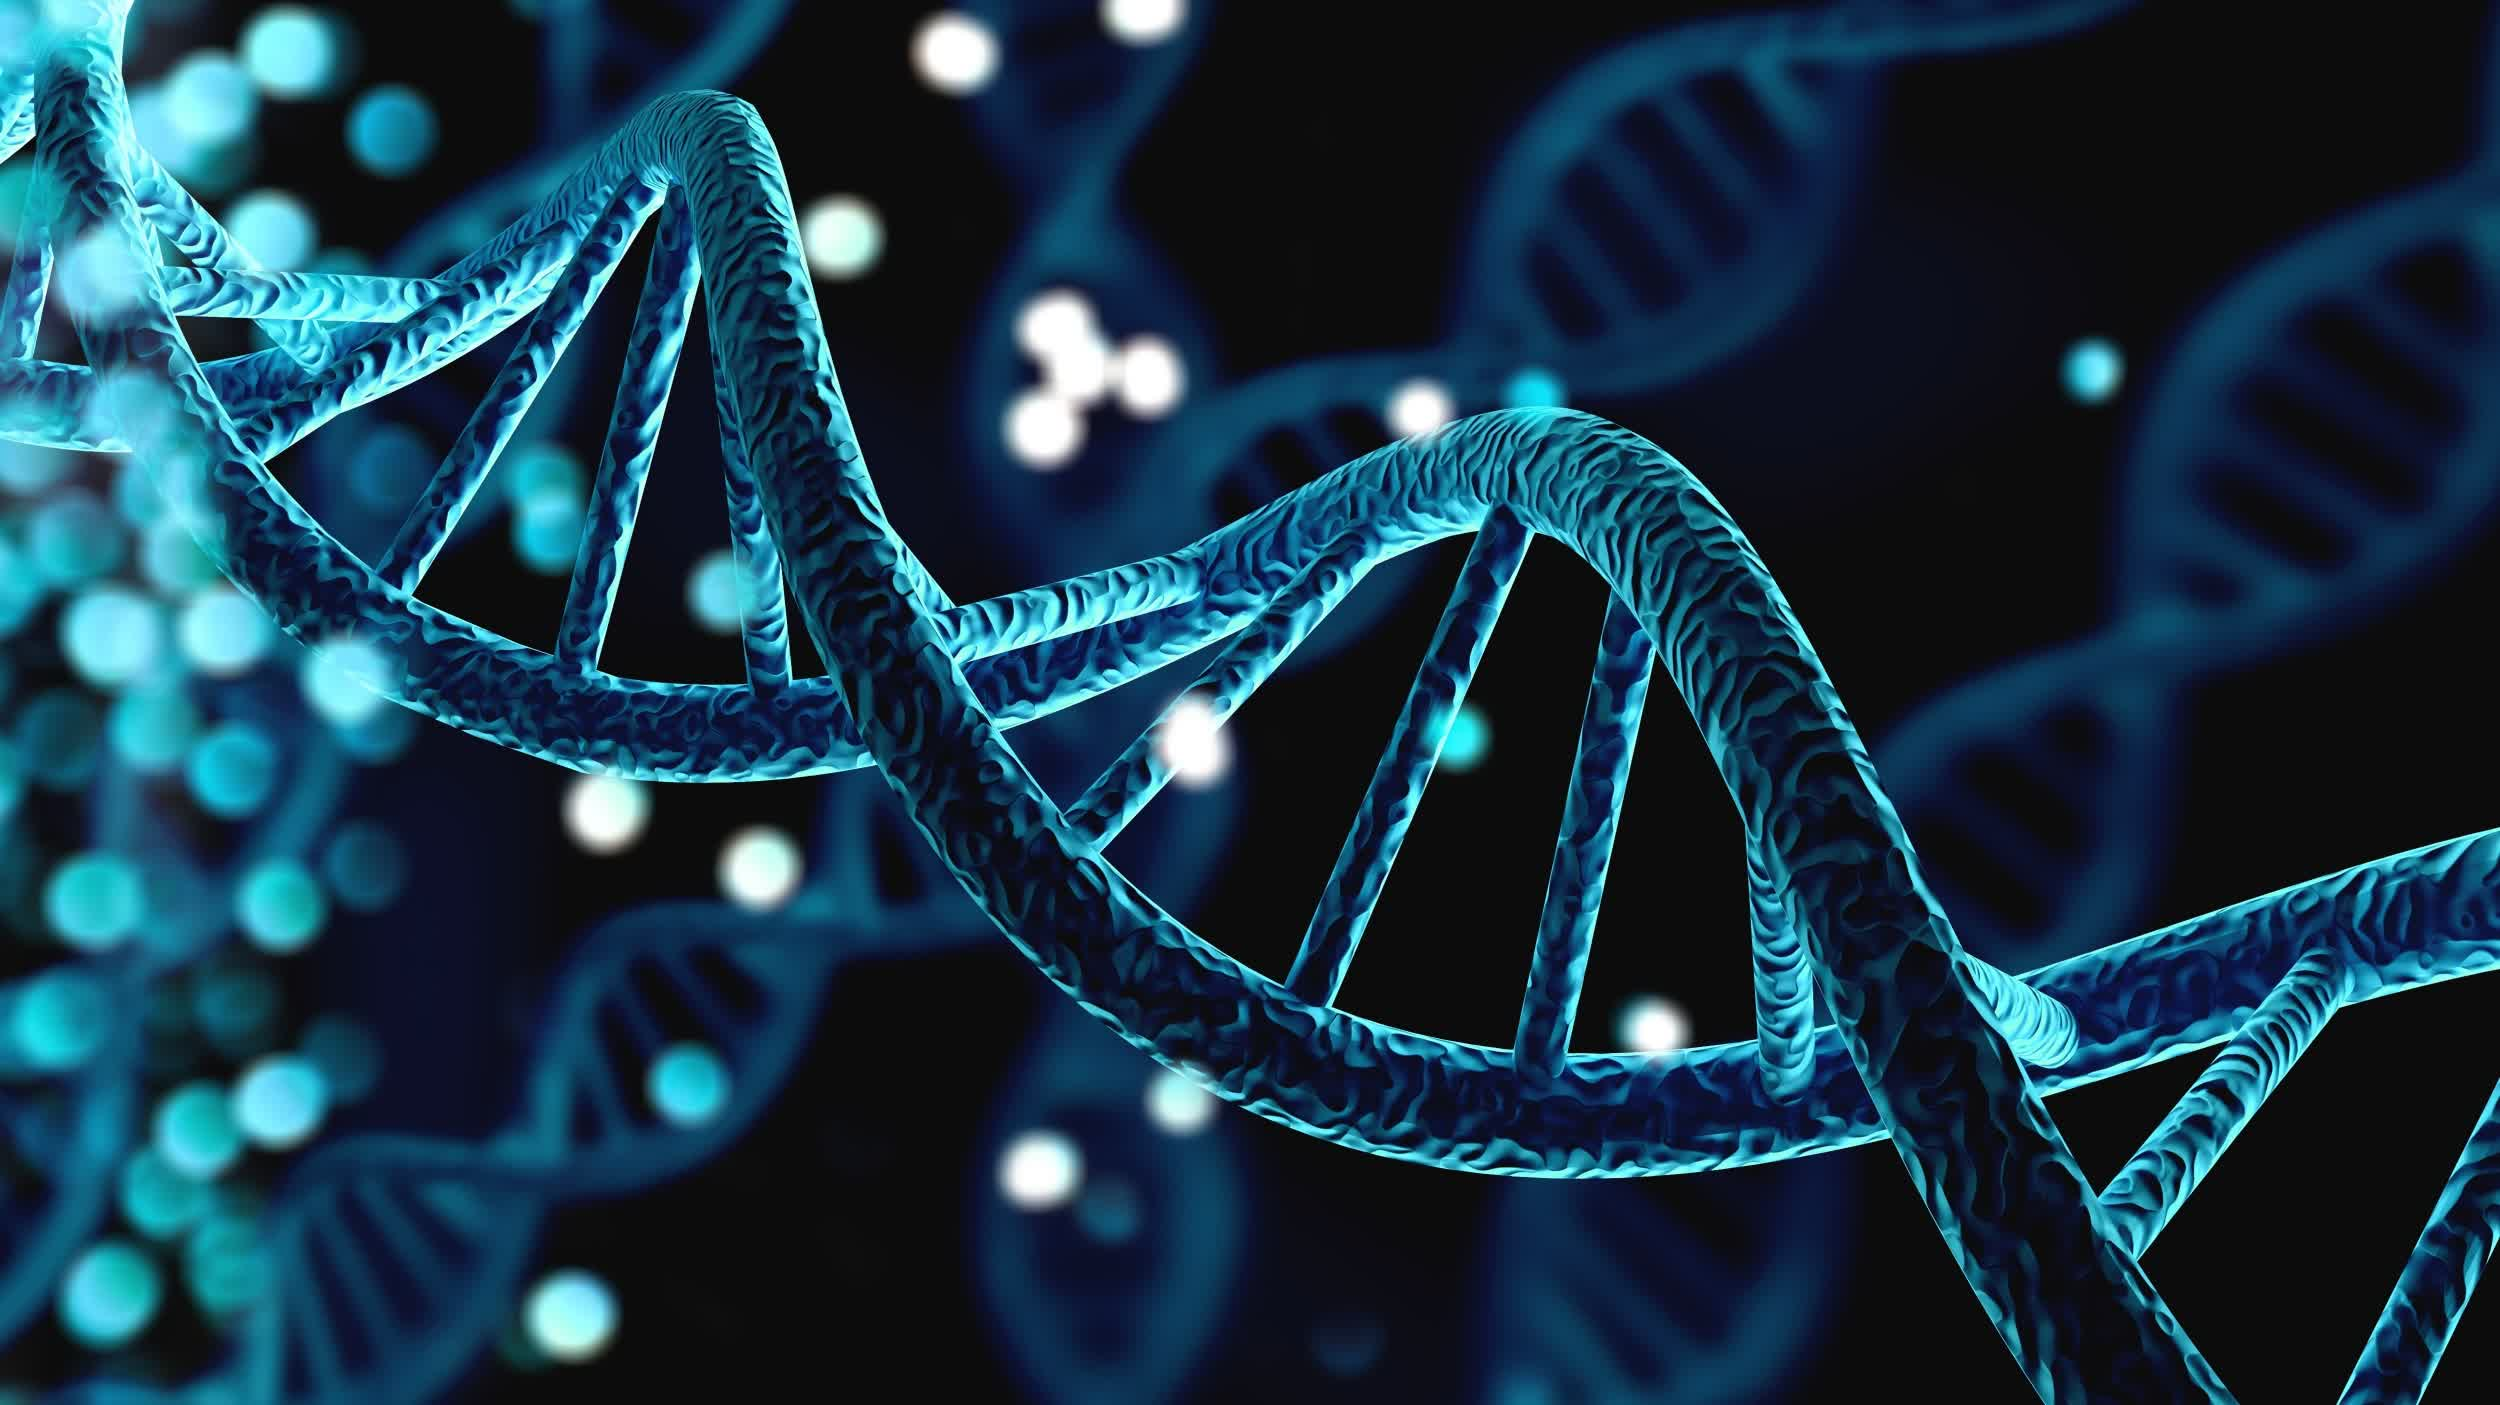 Scientists show for the first time that it's possible to collect DNA from the air